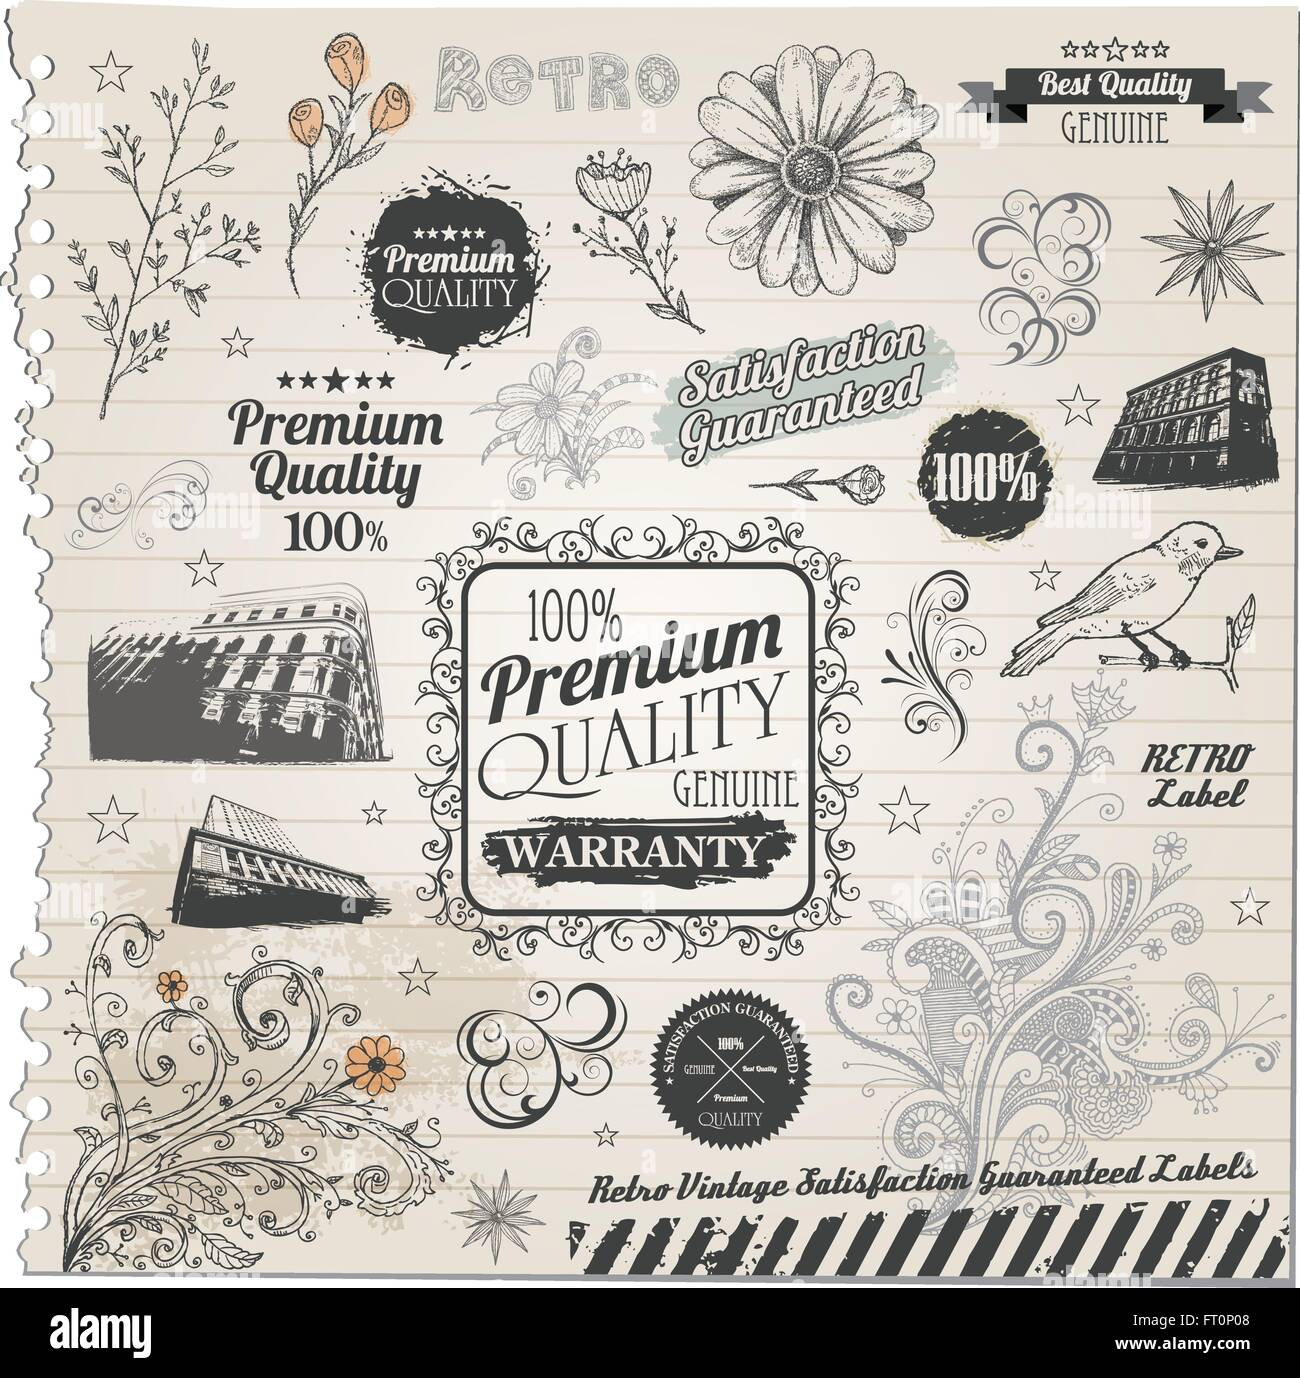 Premium suality and satisfaction guarantee Label, decorative flowers, antique and baroque frames on old paper texture - Stock Vector